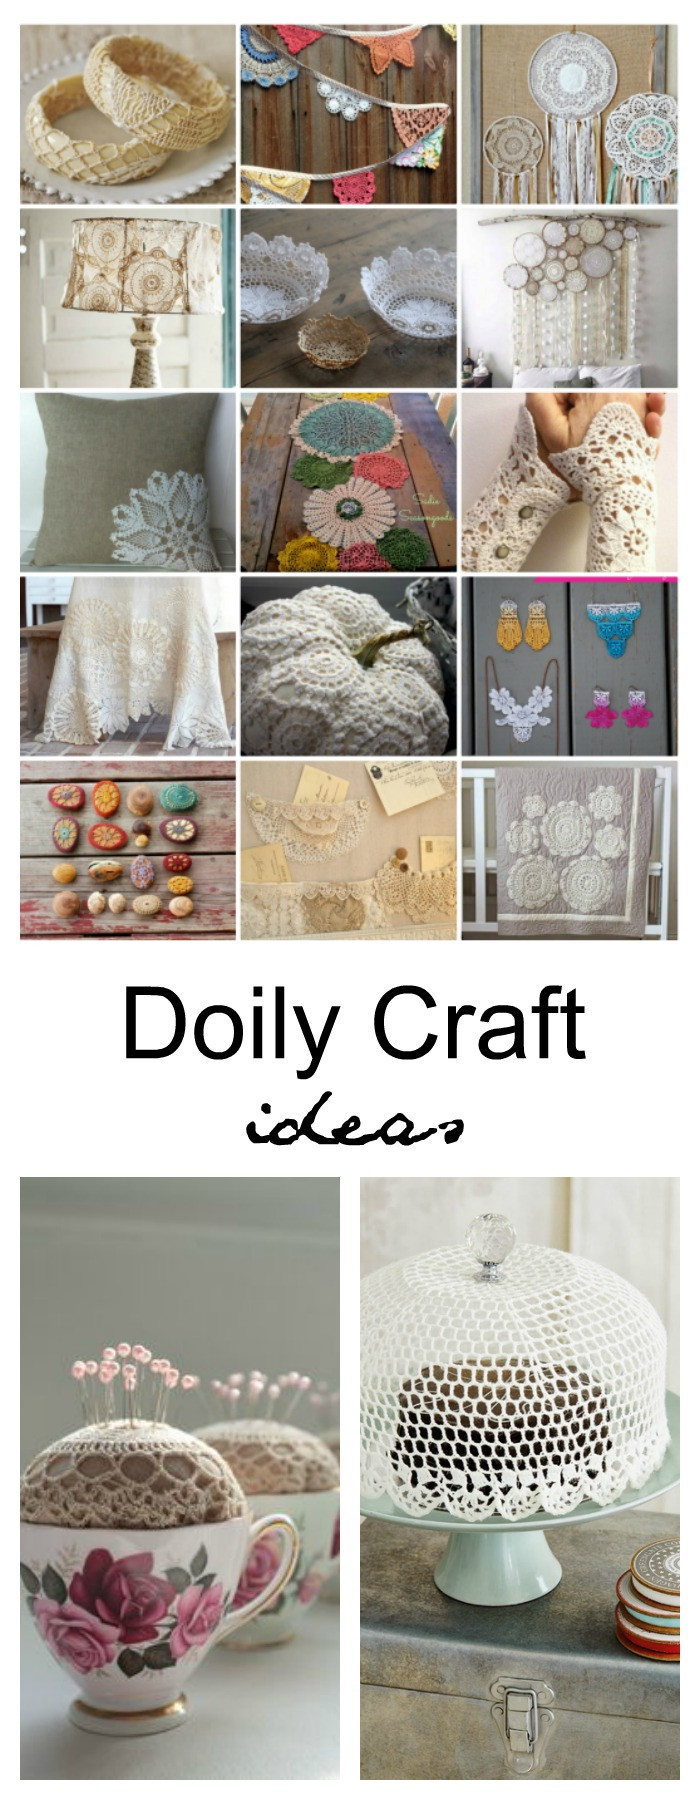 Doily Crafts Luxury Diy Doily Craft Ideas the Idea Room Of Contemporary 47 Photos Doily Crafts